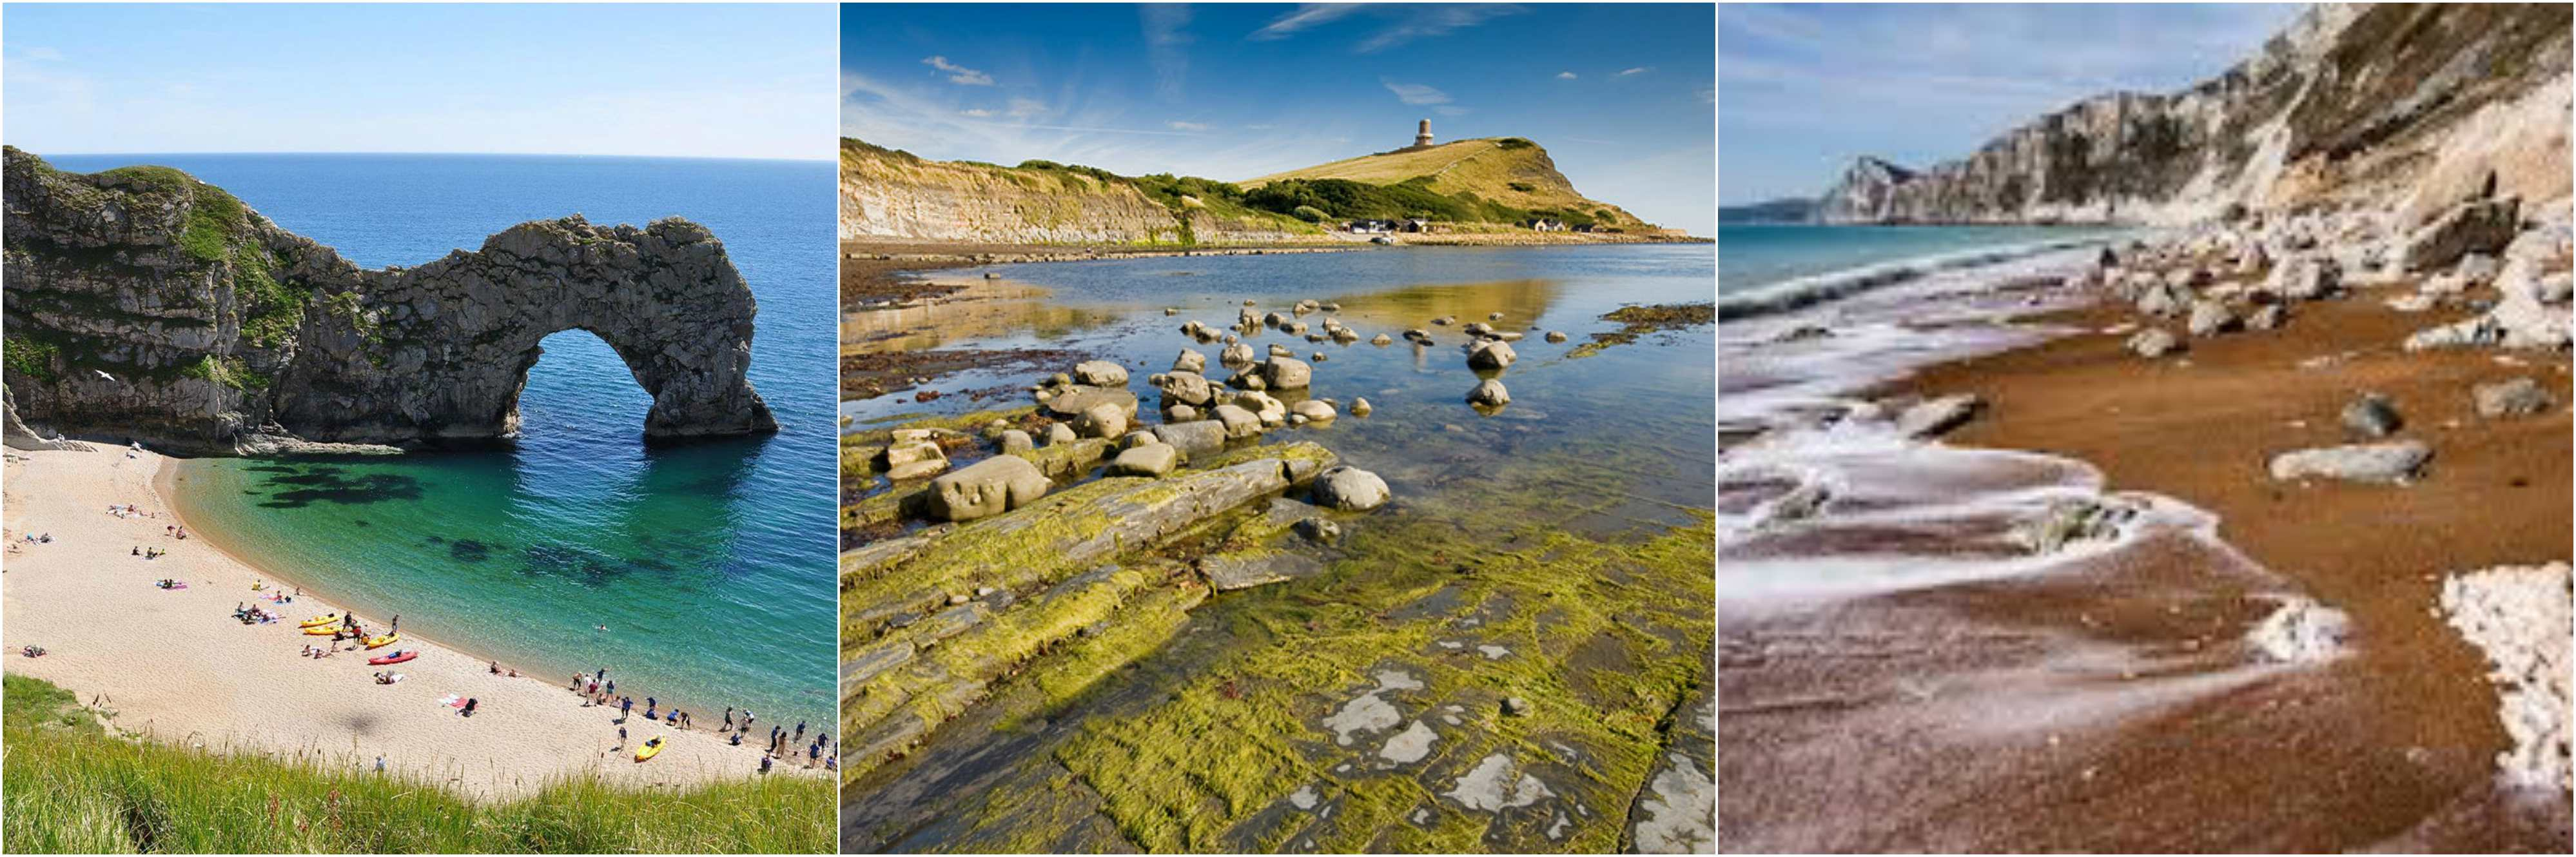 Visit Lulworth Cove Kimmeridge Ringstead Bay Durdle Door or Worbarrow Bay with its deserted village of Tyneham. : dirdle door - pezcame.com